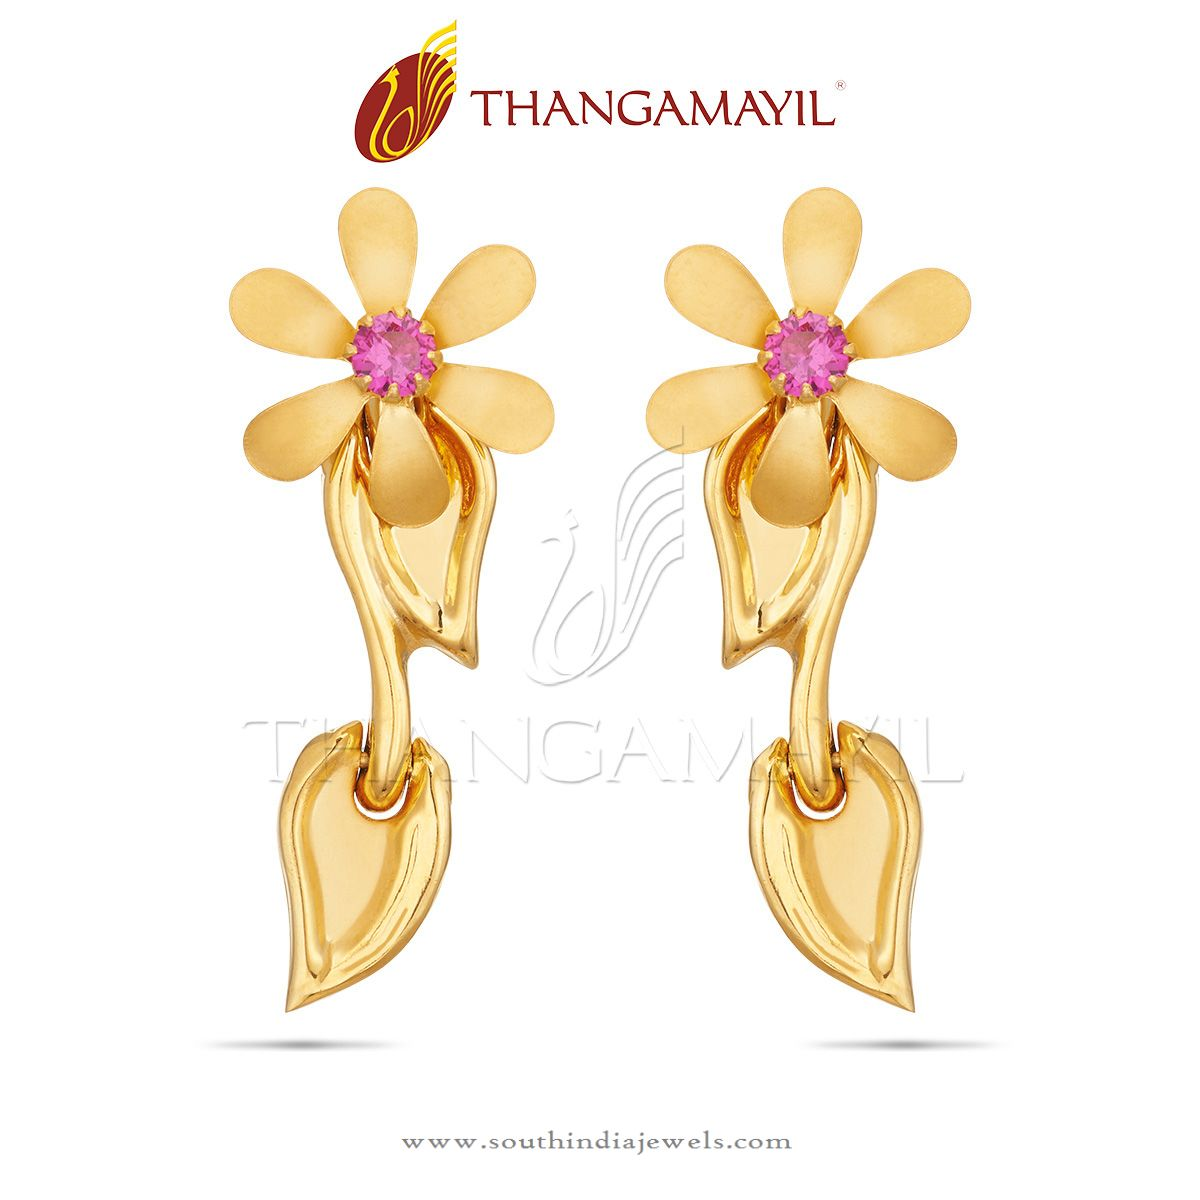 post tictail with bhagat bhagatjewels jewels brass stud plated earrings handmade gold plain